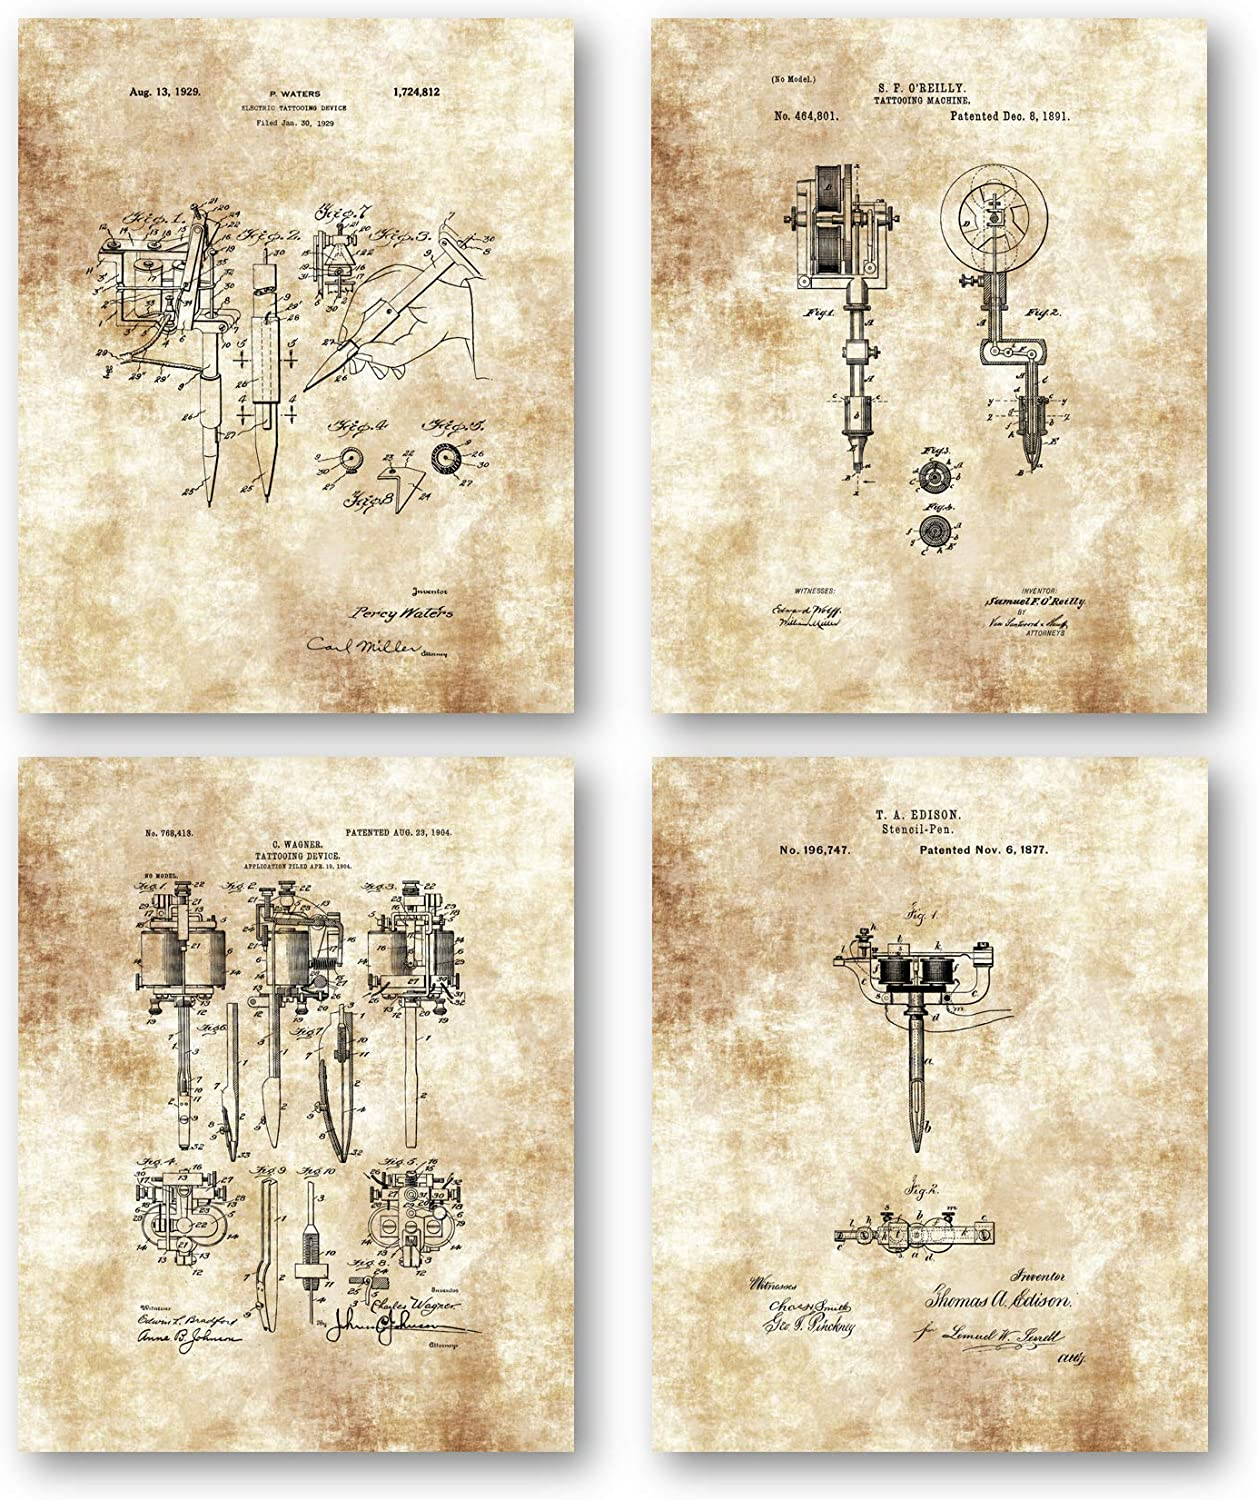 Original Tattoo Machine Drawings Artwork - Set of 4 8 x 10 Unframed Patent Prints - Great Gift for Tattoo Artists and Inkaholics - Vintage Tattoo Parlor Decor - Mancave Art